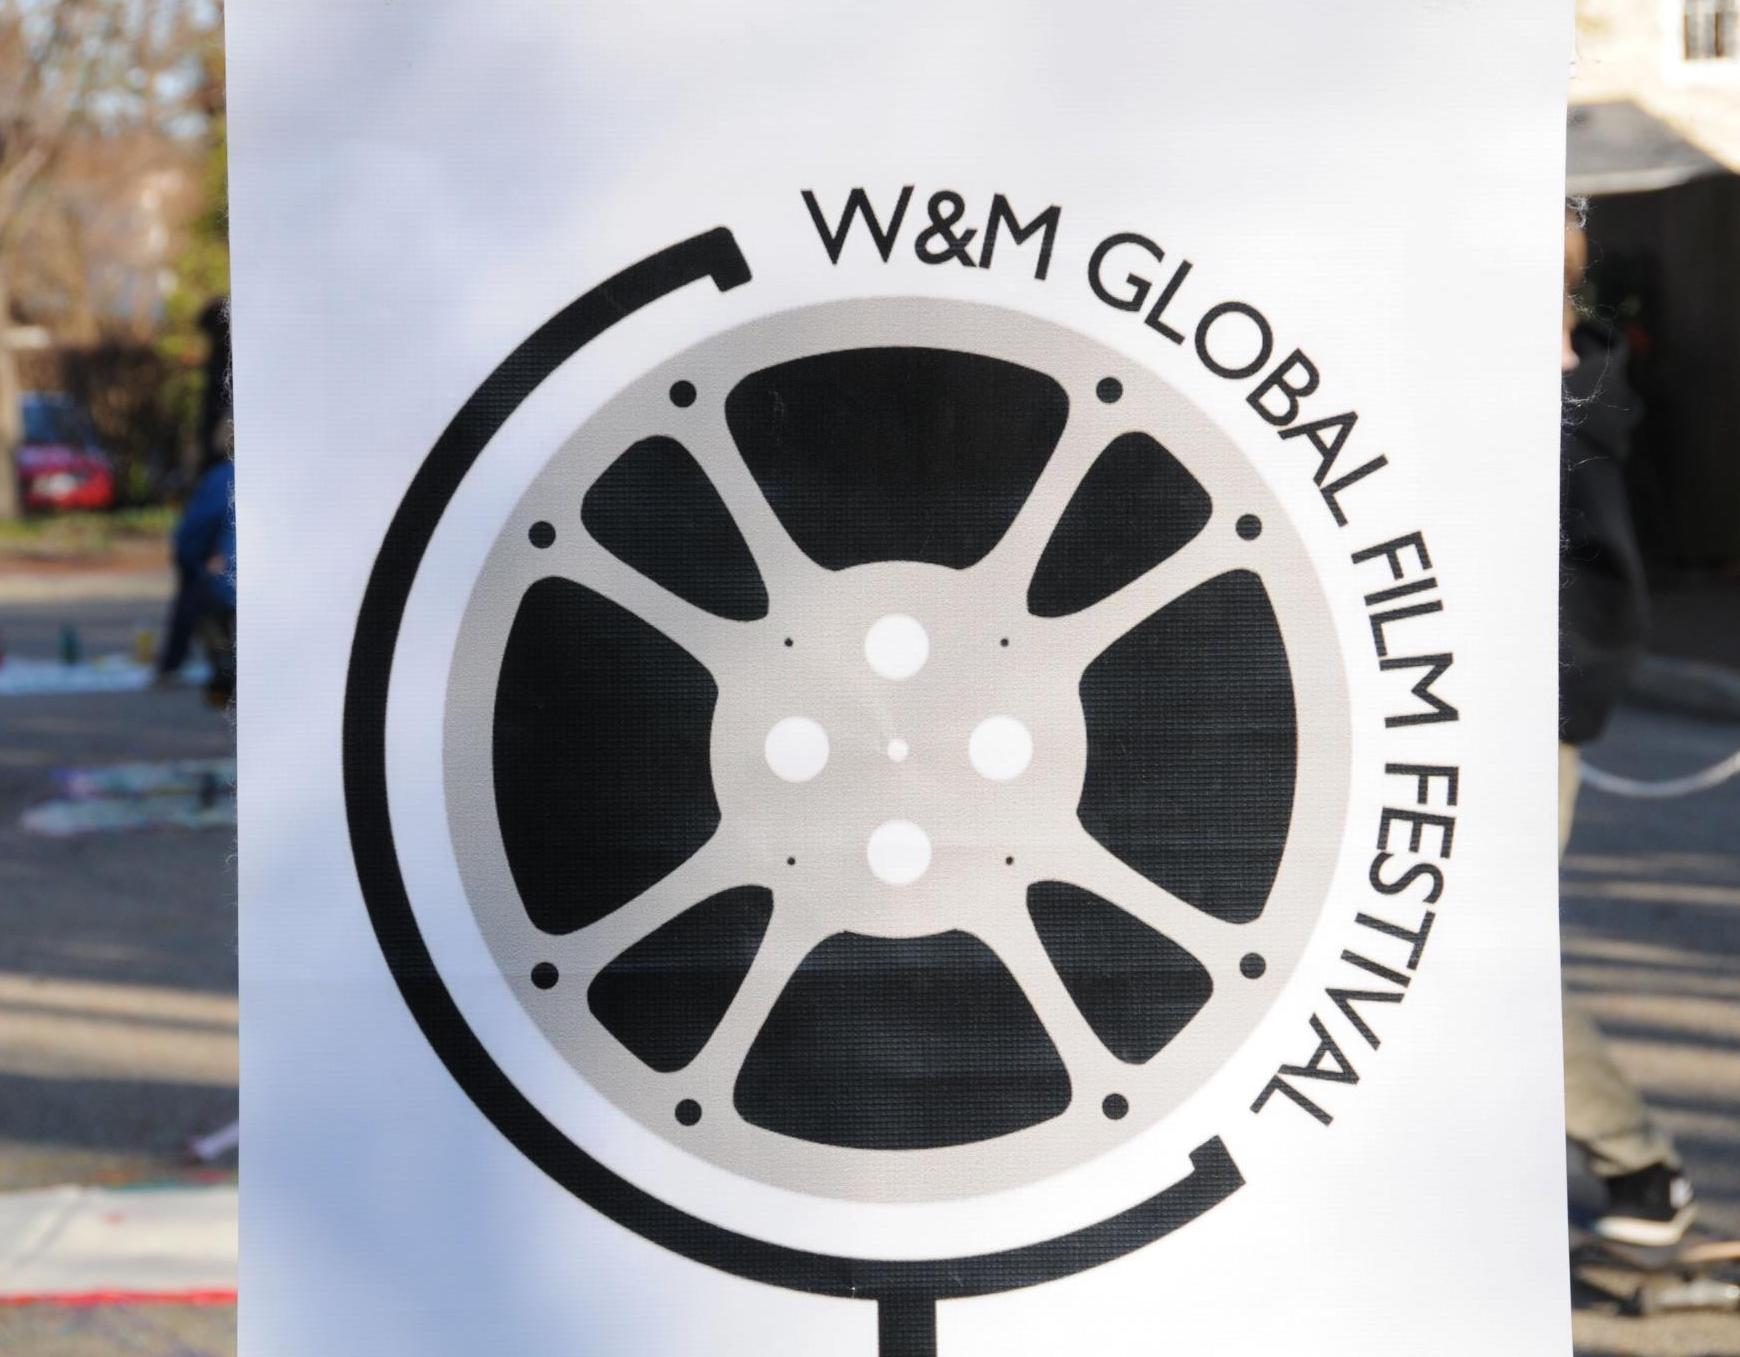 W&M Global Film Festival @ William & Mary